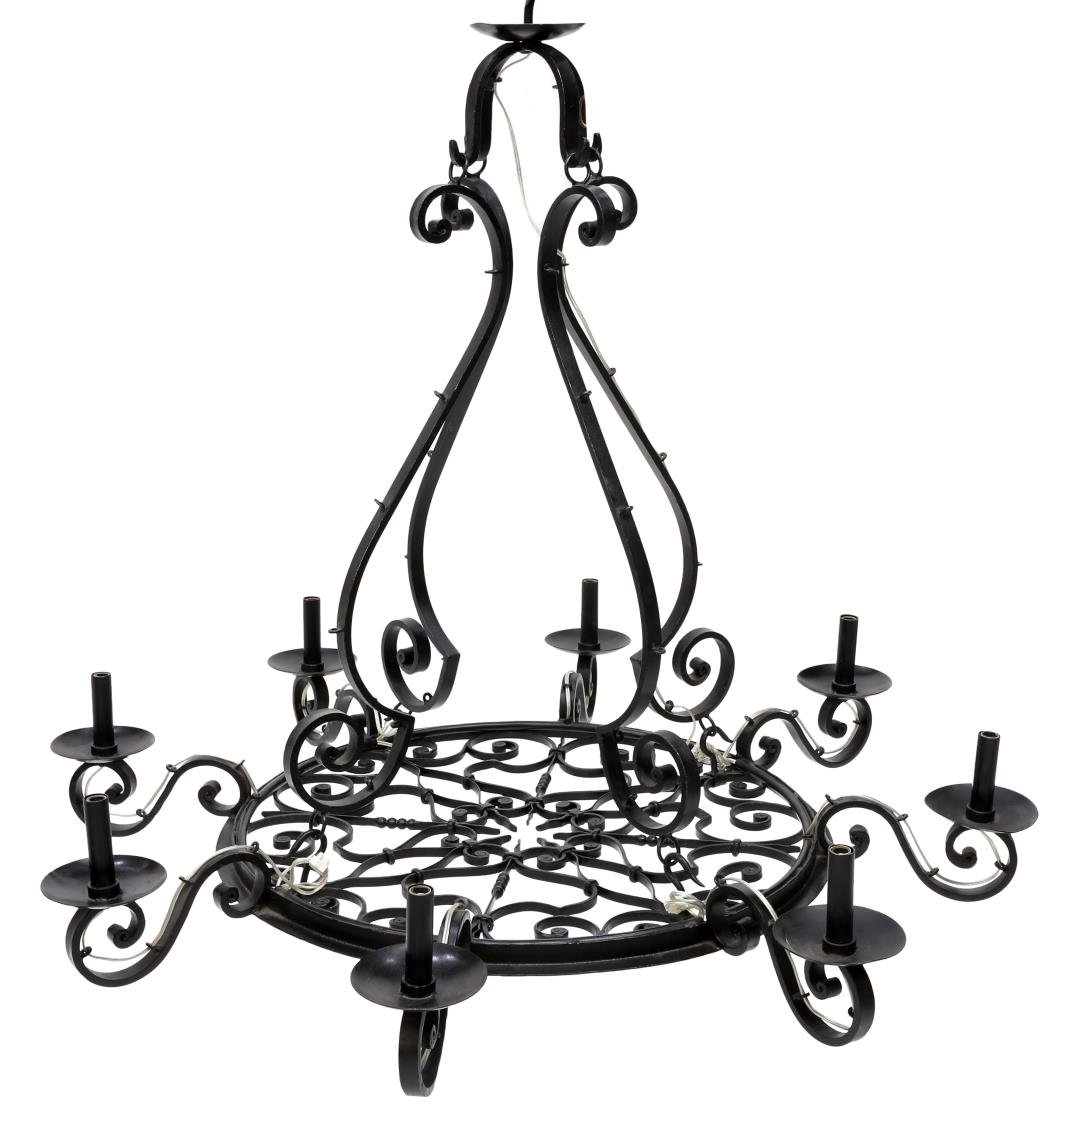 FRENCH COUNTRY WROUGHT IRON CHANDELIER